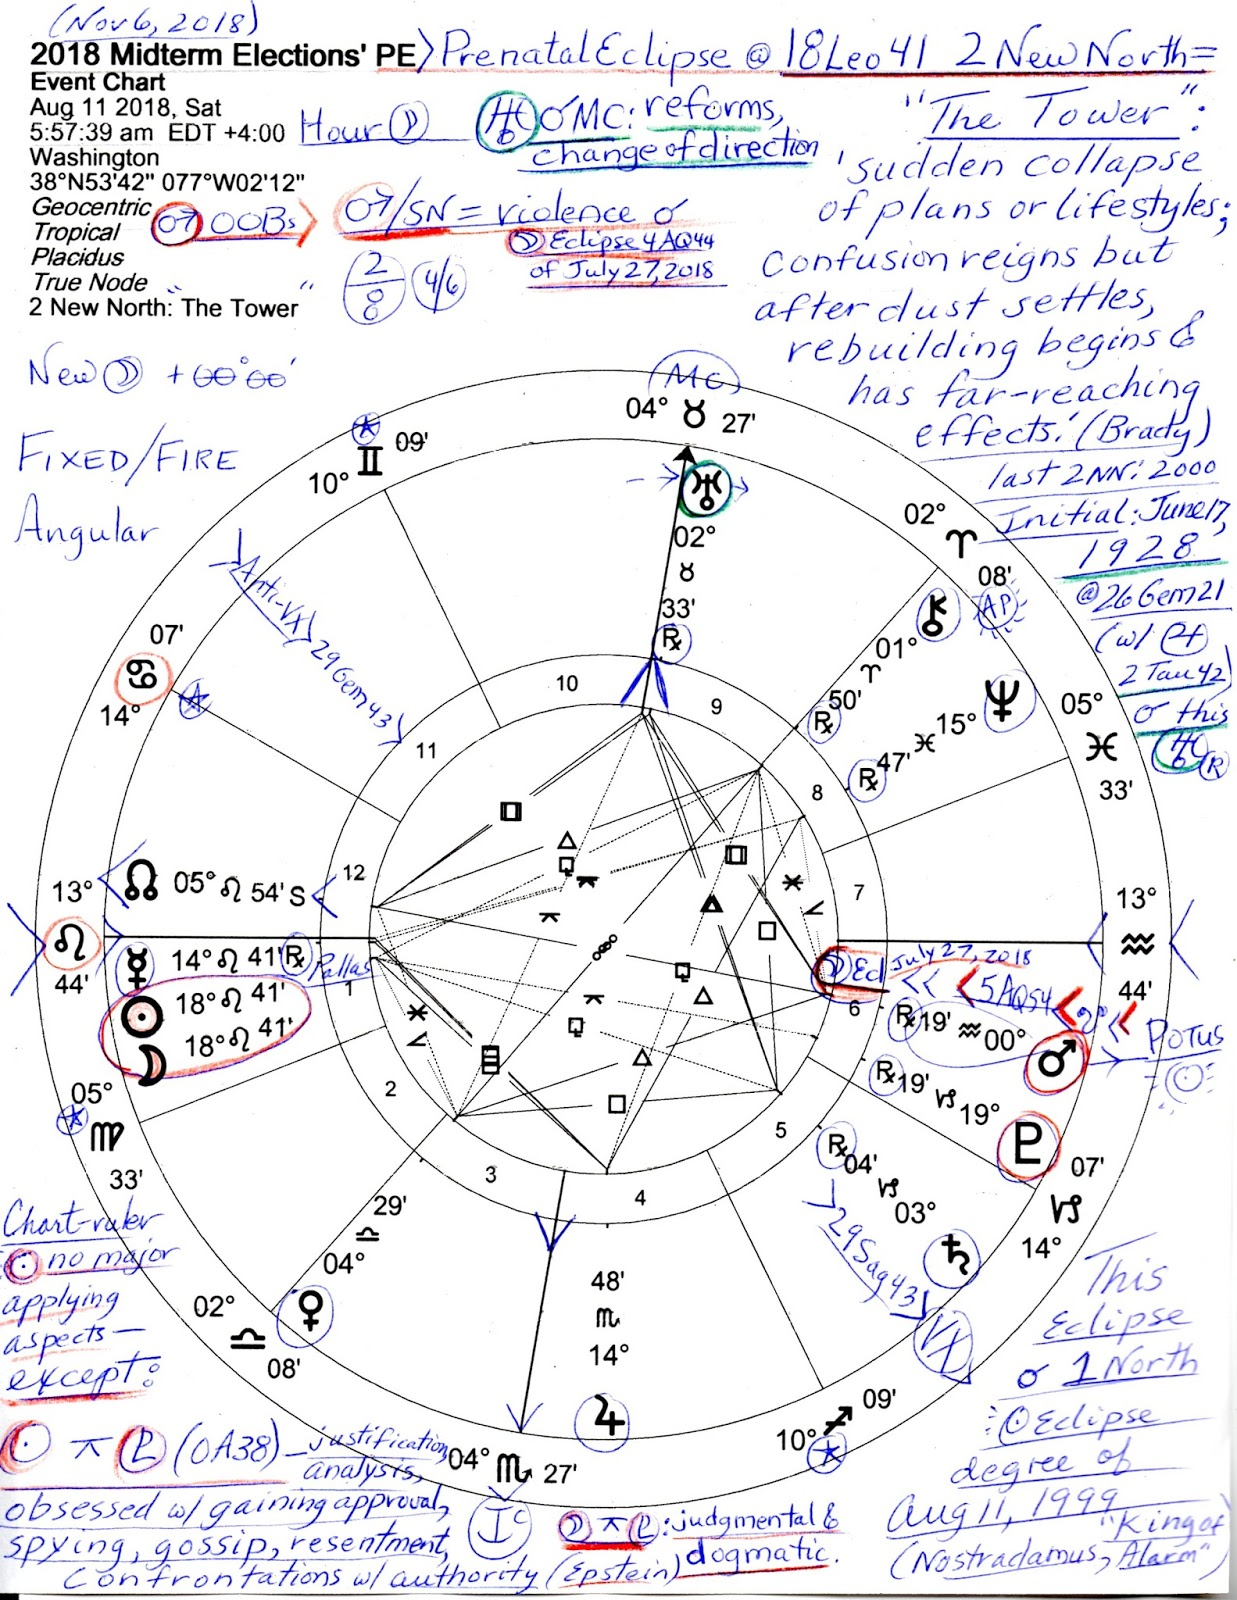 Chart ruler astrology images free any chart examples astrology ascendant chart images free any chart examples chart ruler astrology images free any chart examples nvjuhfo Image collections